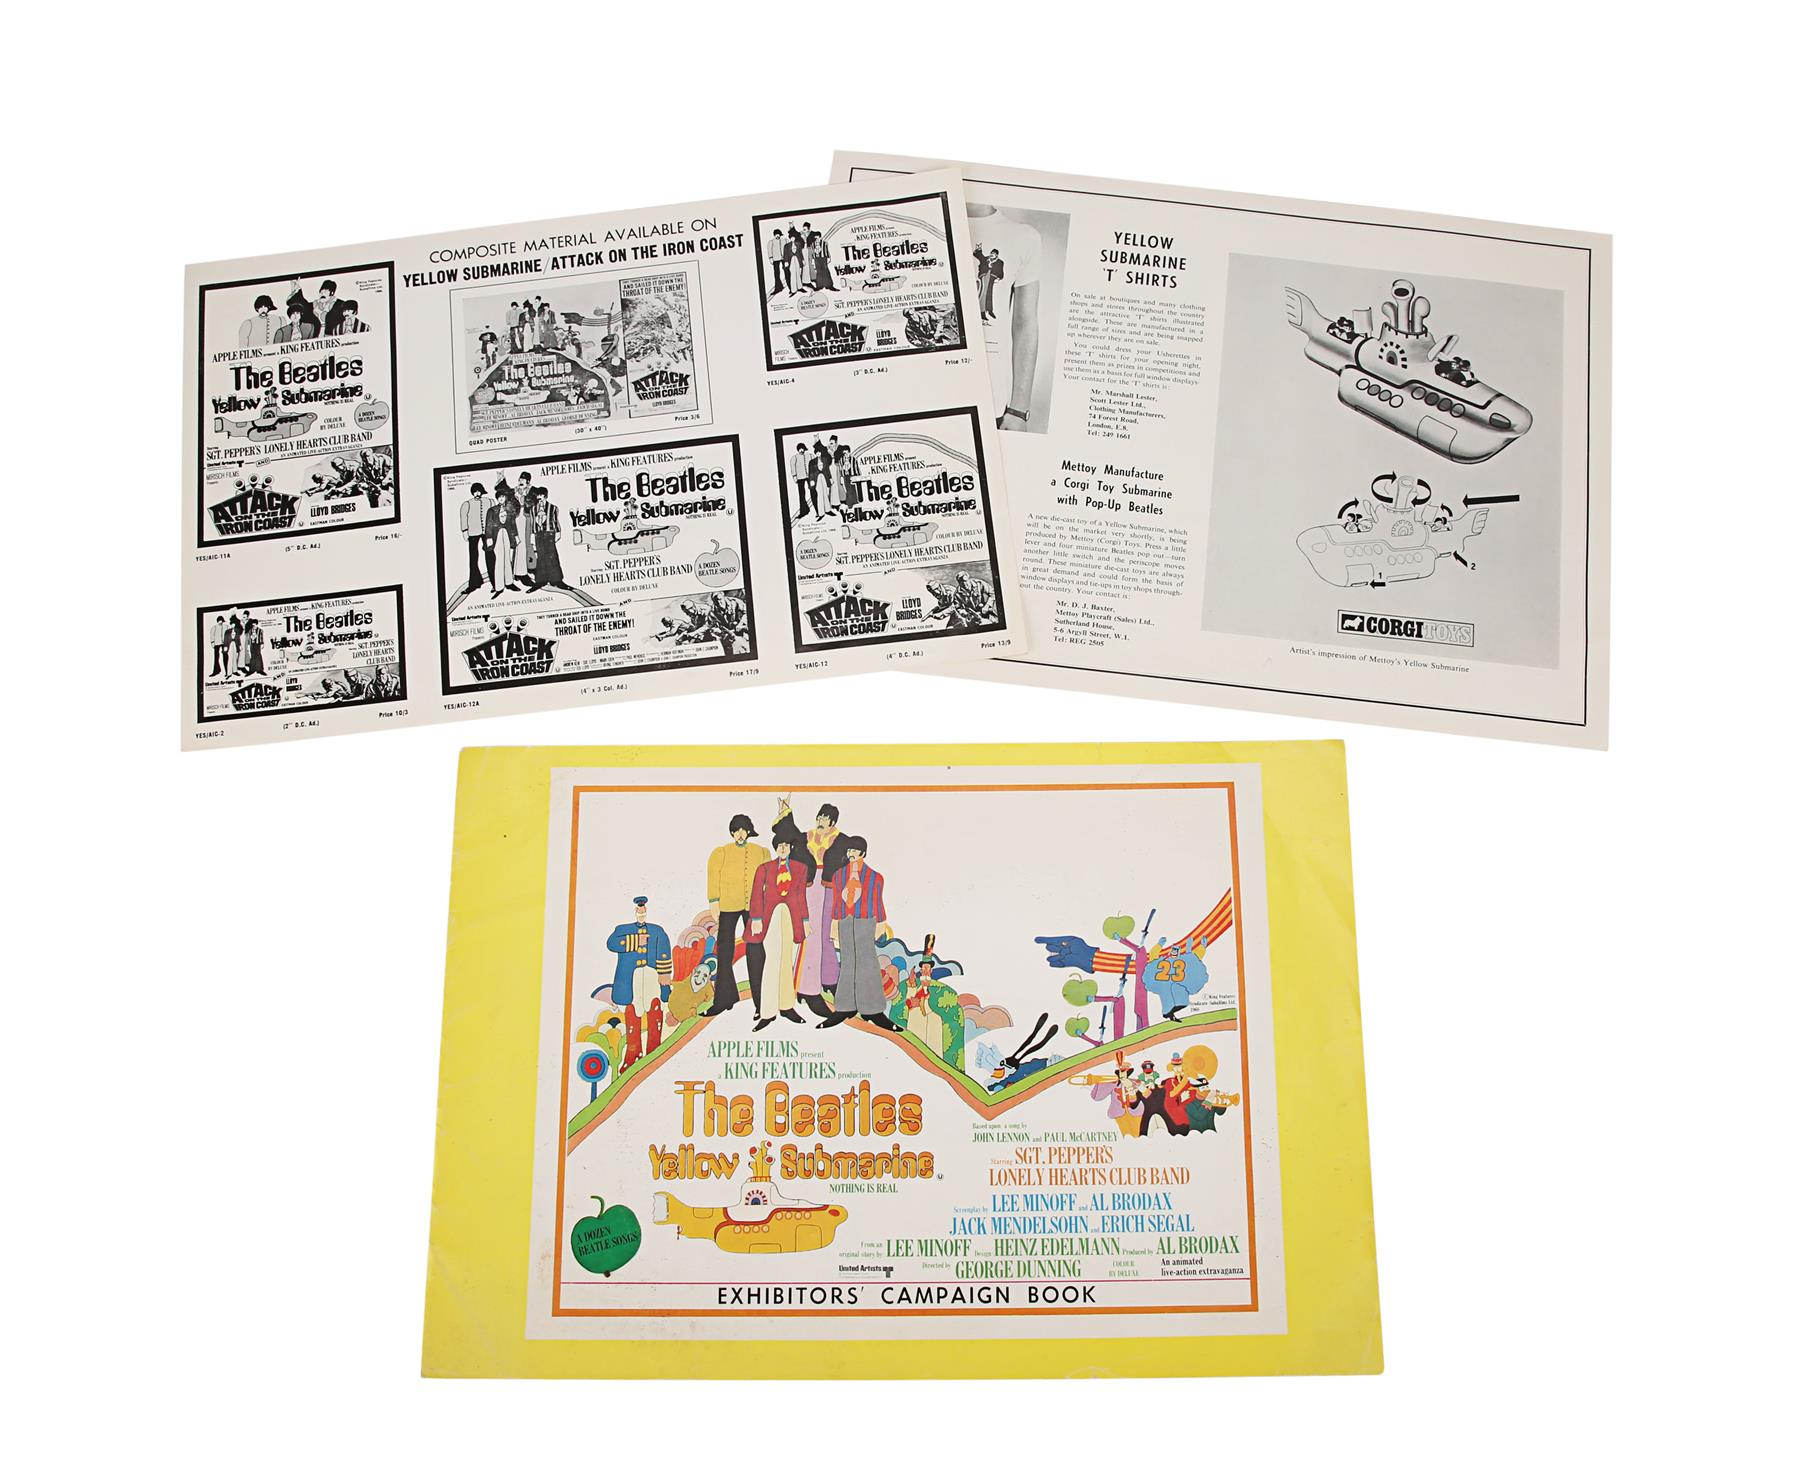 YELLOW SUBMARINE (1968) - British Exhibitors' Campaign Book and Two Advertising Supplements, 1968